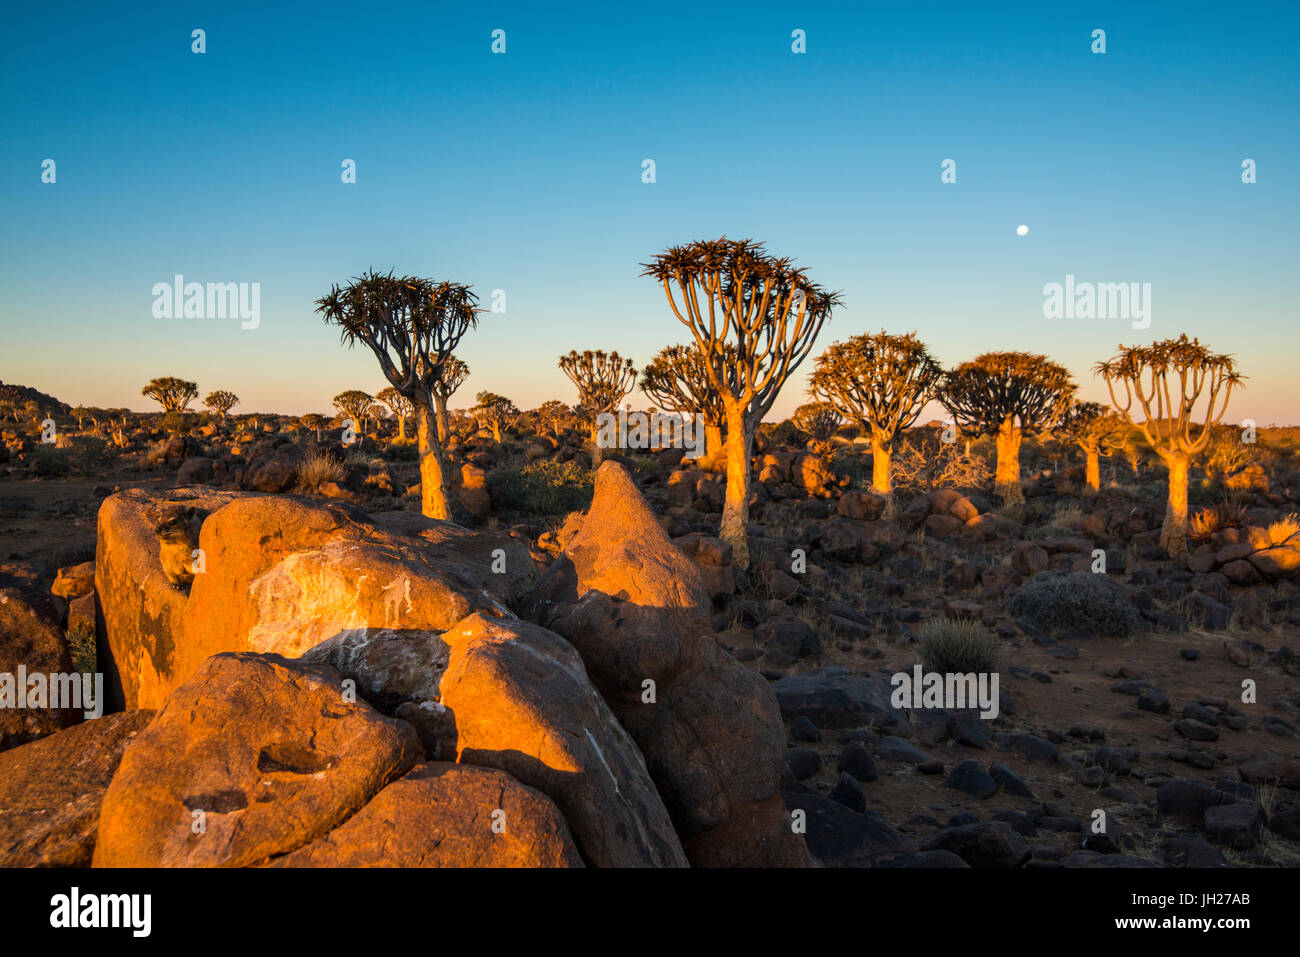 Quiver tree forest (Aloe dichotoma) at sunset, Gariganus farm, Keetmanshoop, Namibia, Africa - Stock Image